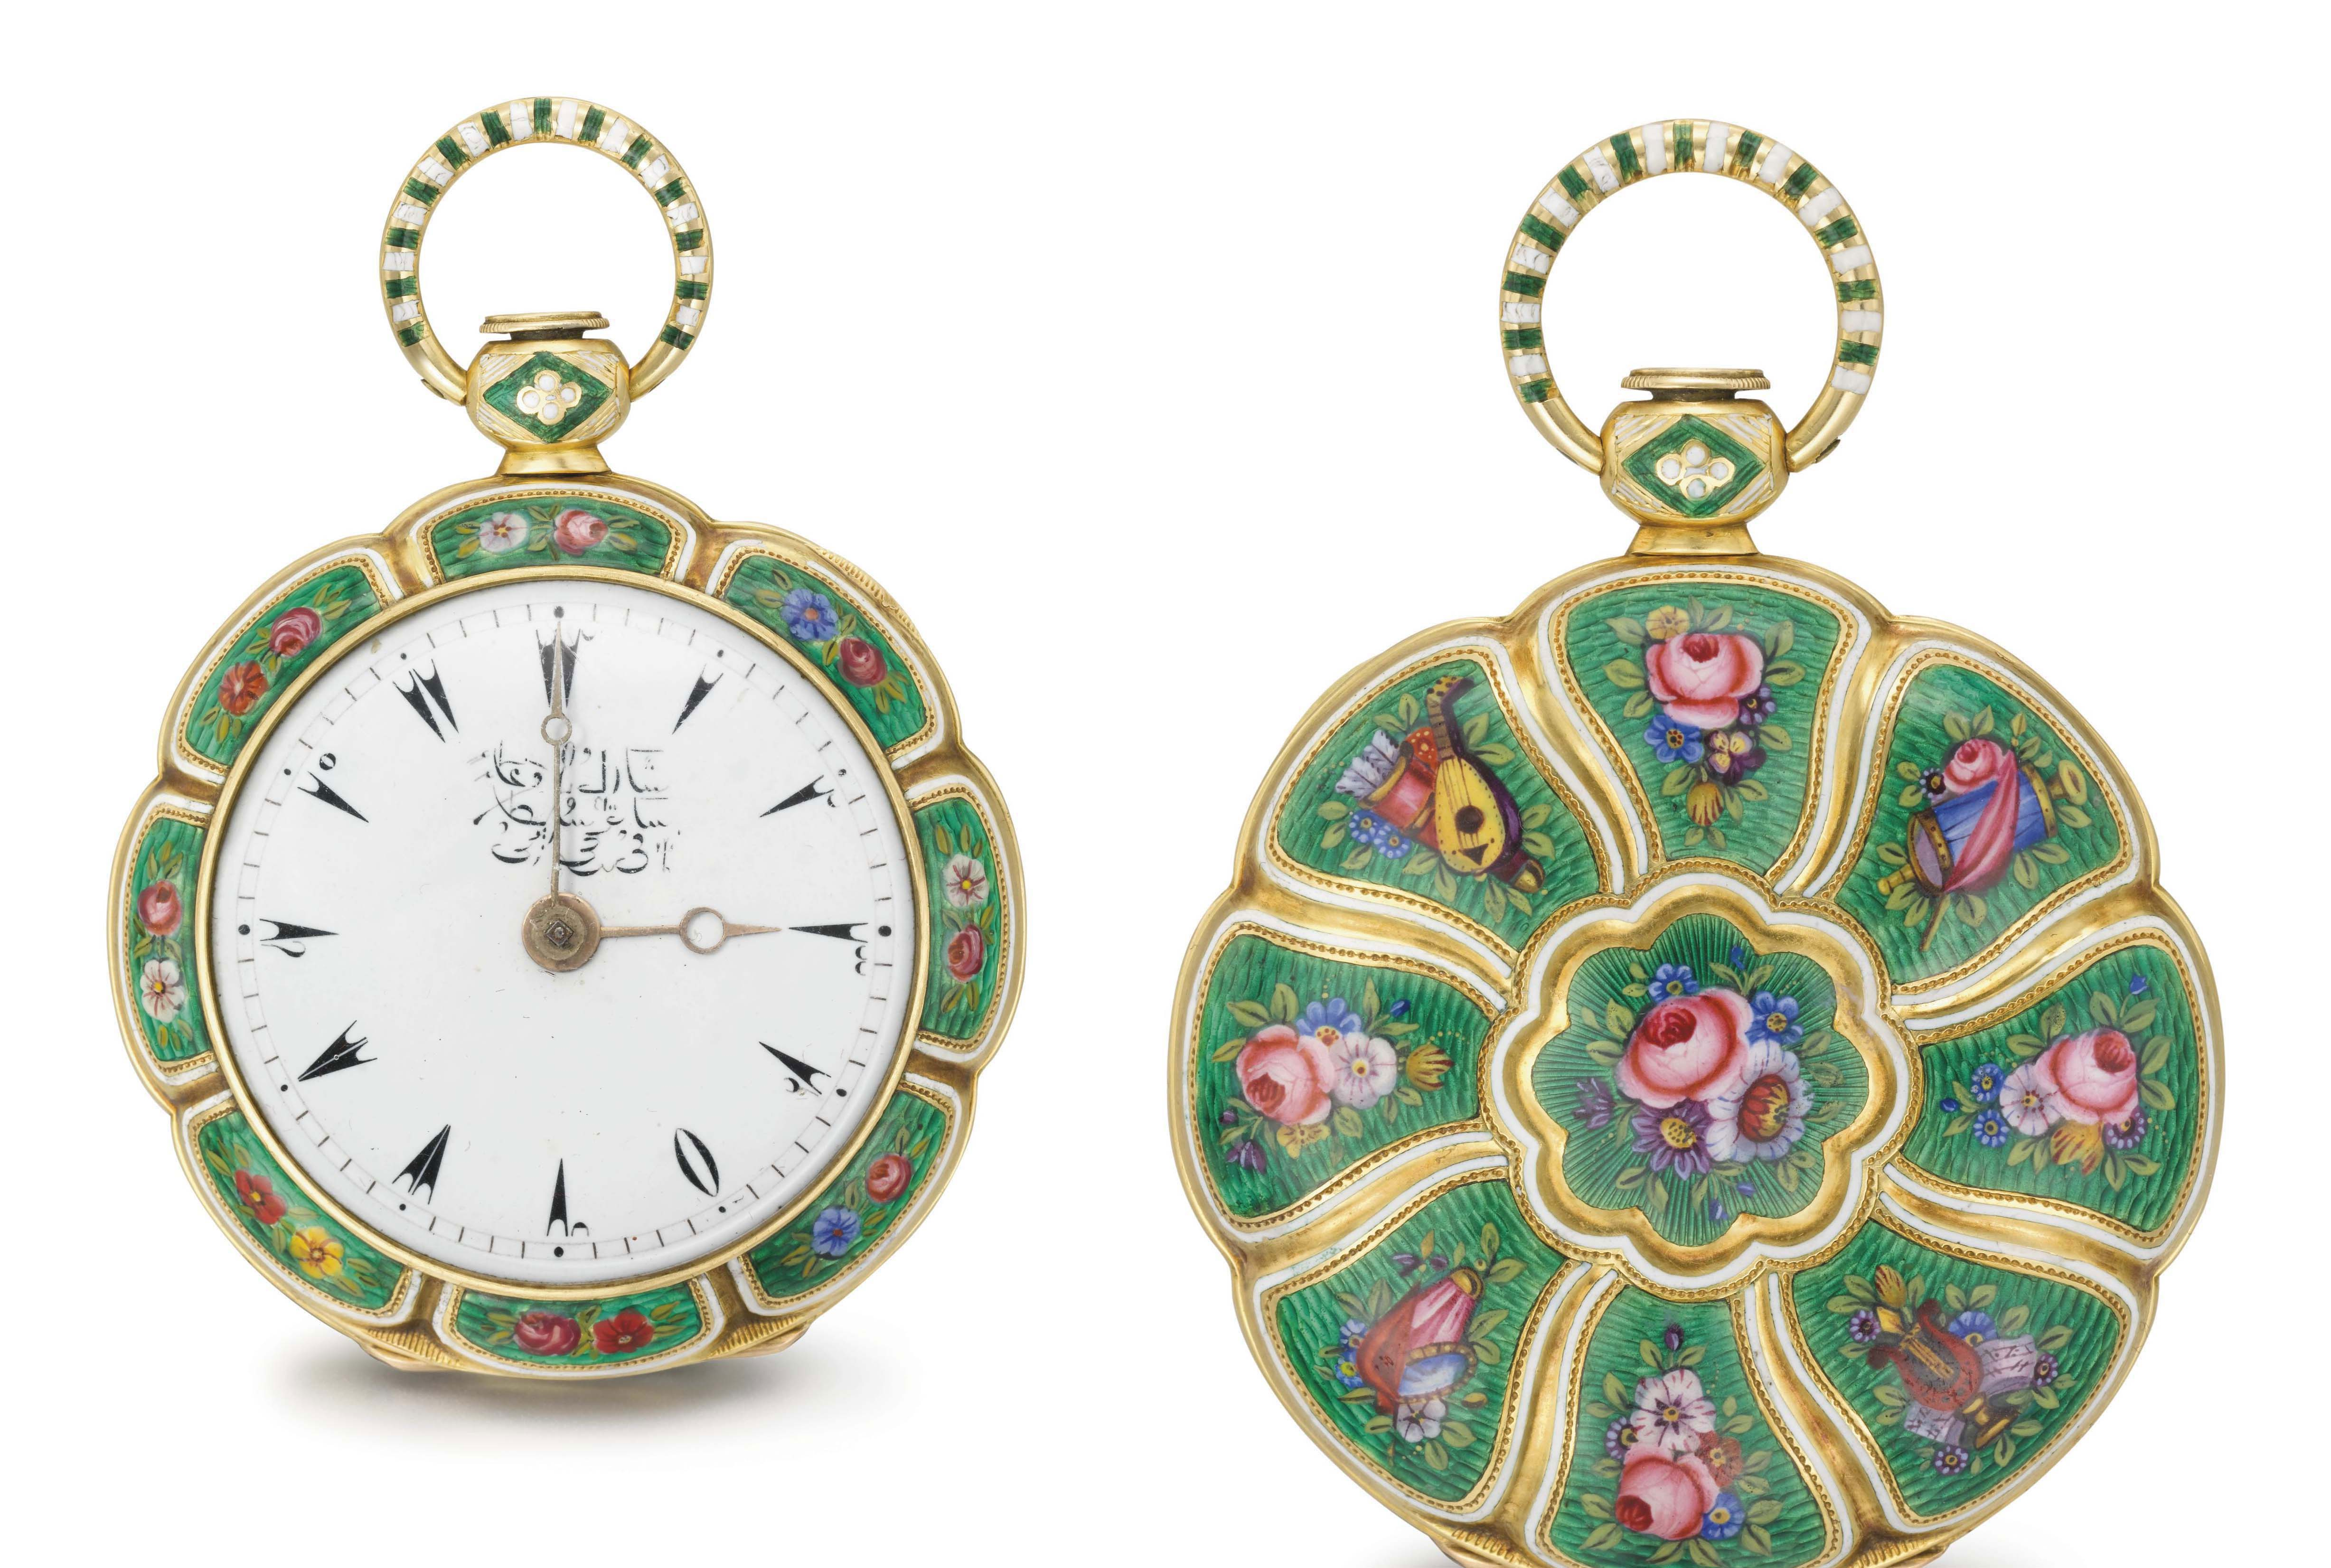 Le Roy. A fine, rare and attractive 18K gold and enamel openface verge watch, made for the Turkish market